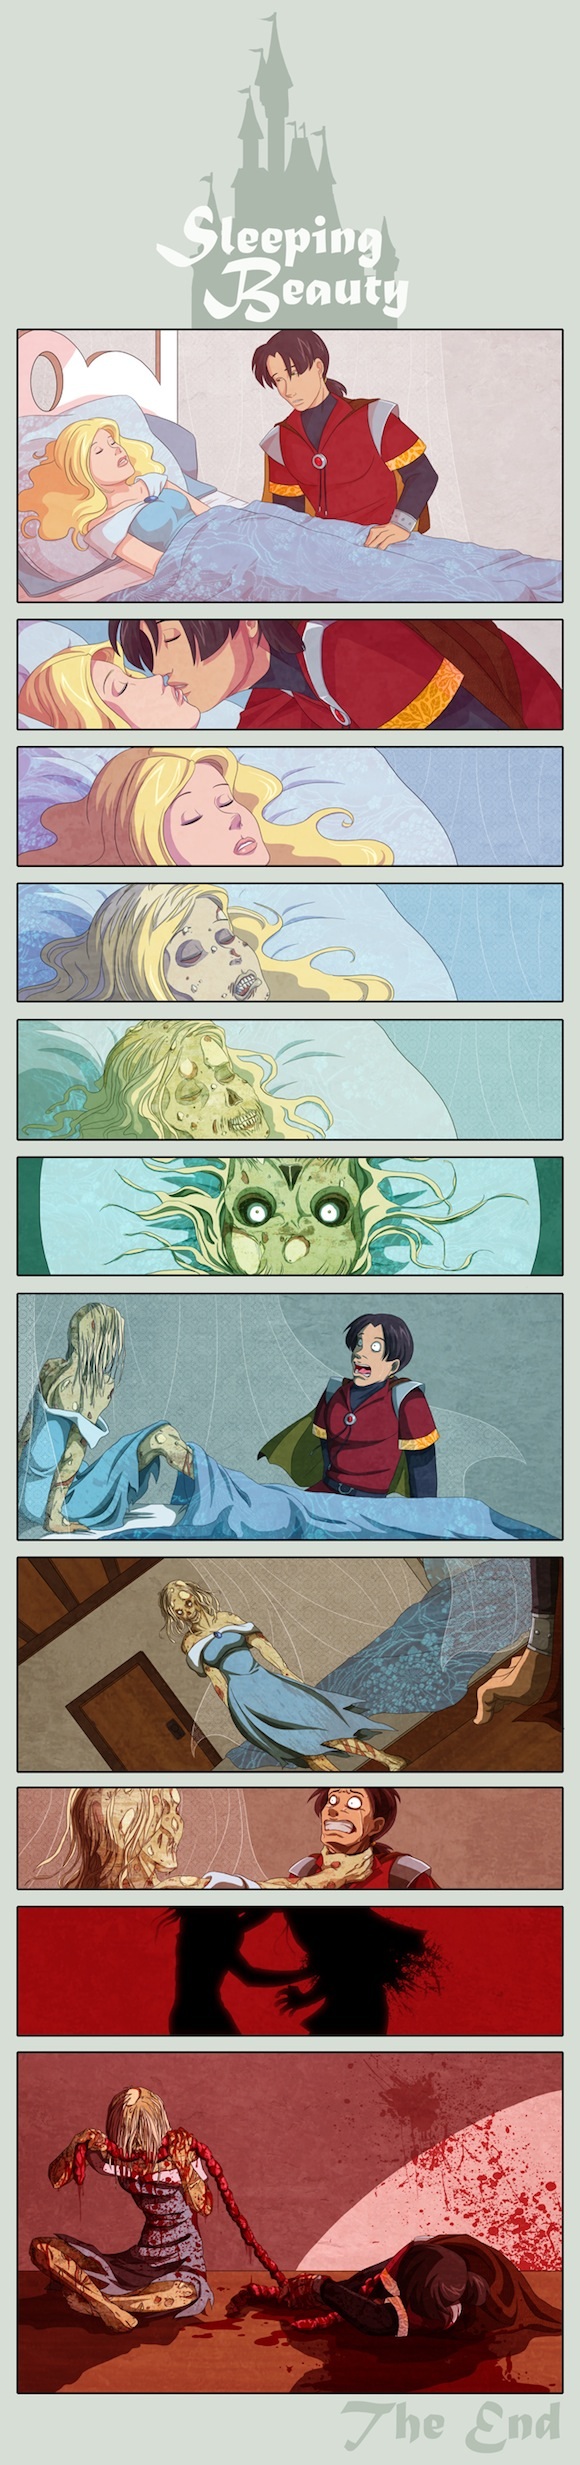 Sleeping Beauty Zombies Humor